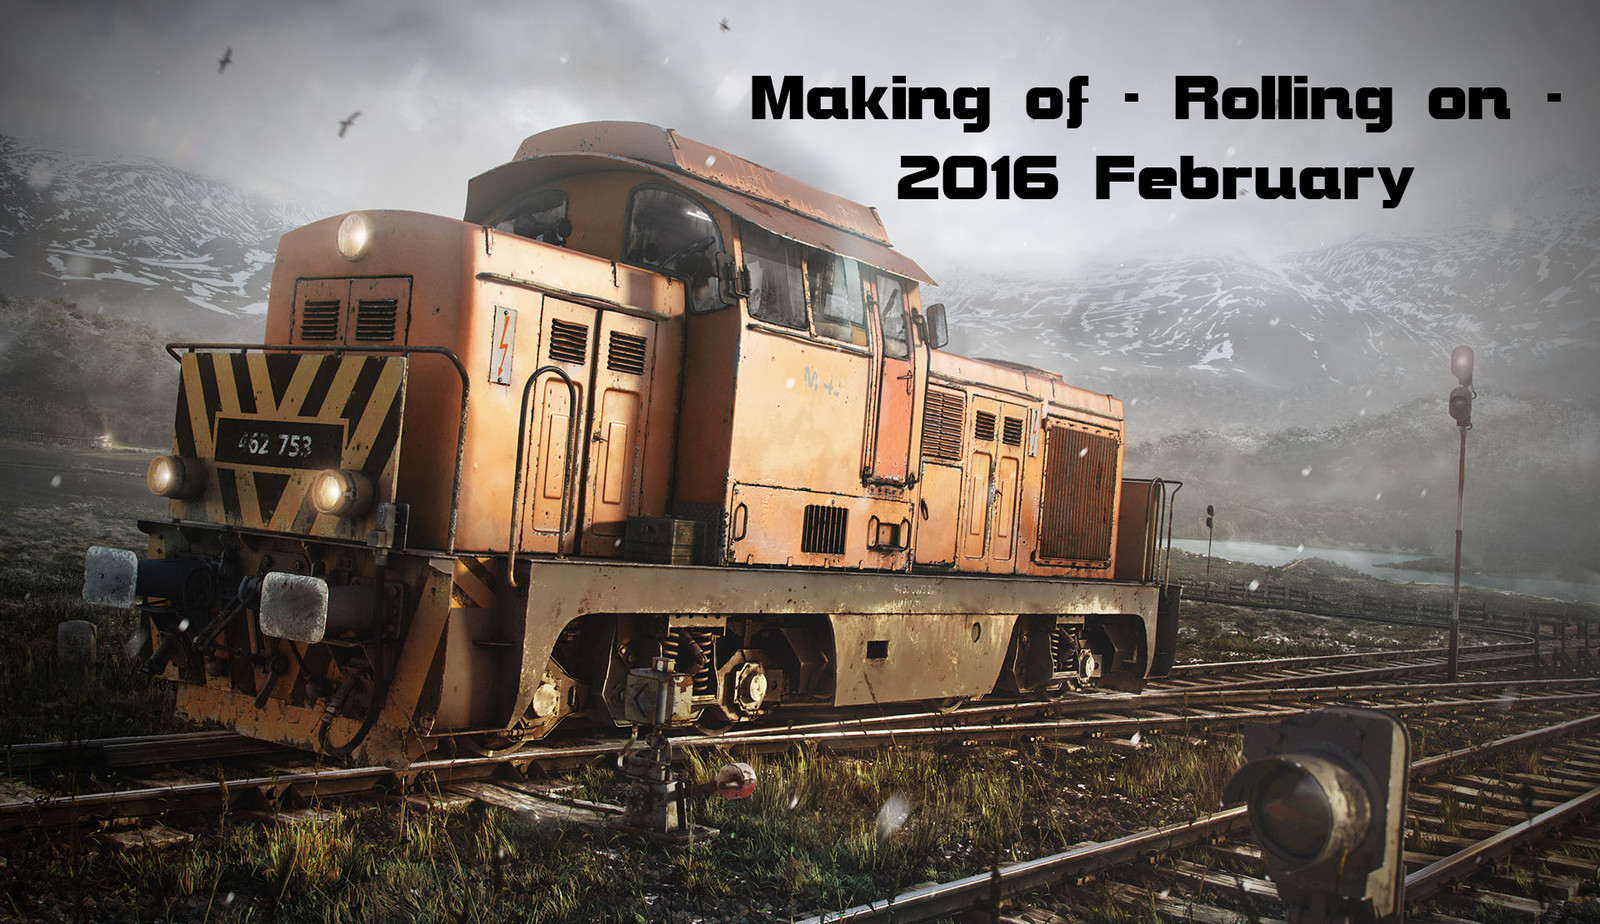 Making of - Rolling on - 2016 February